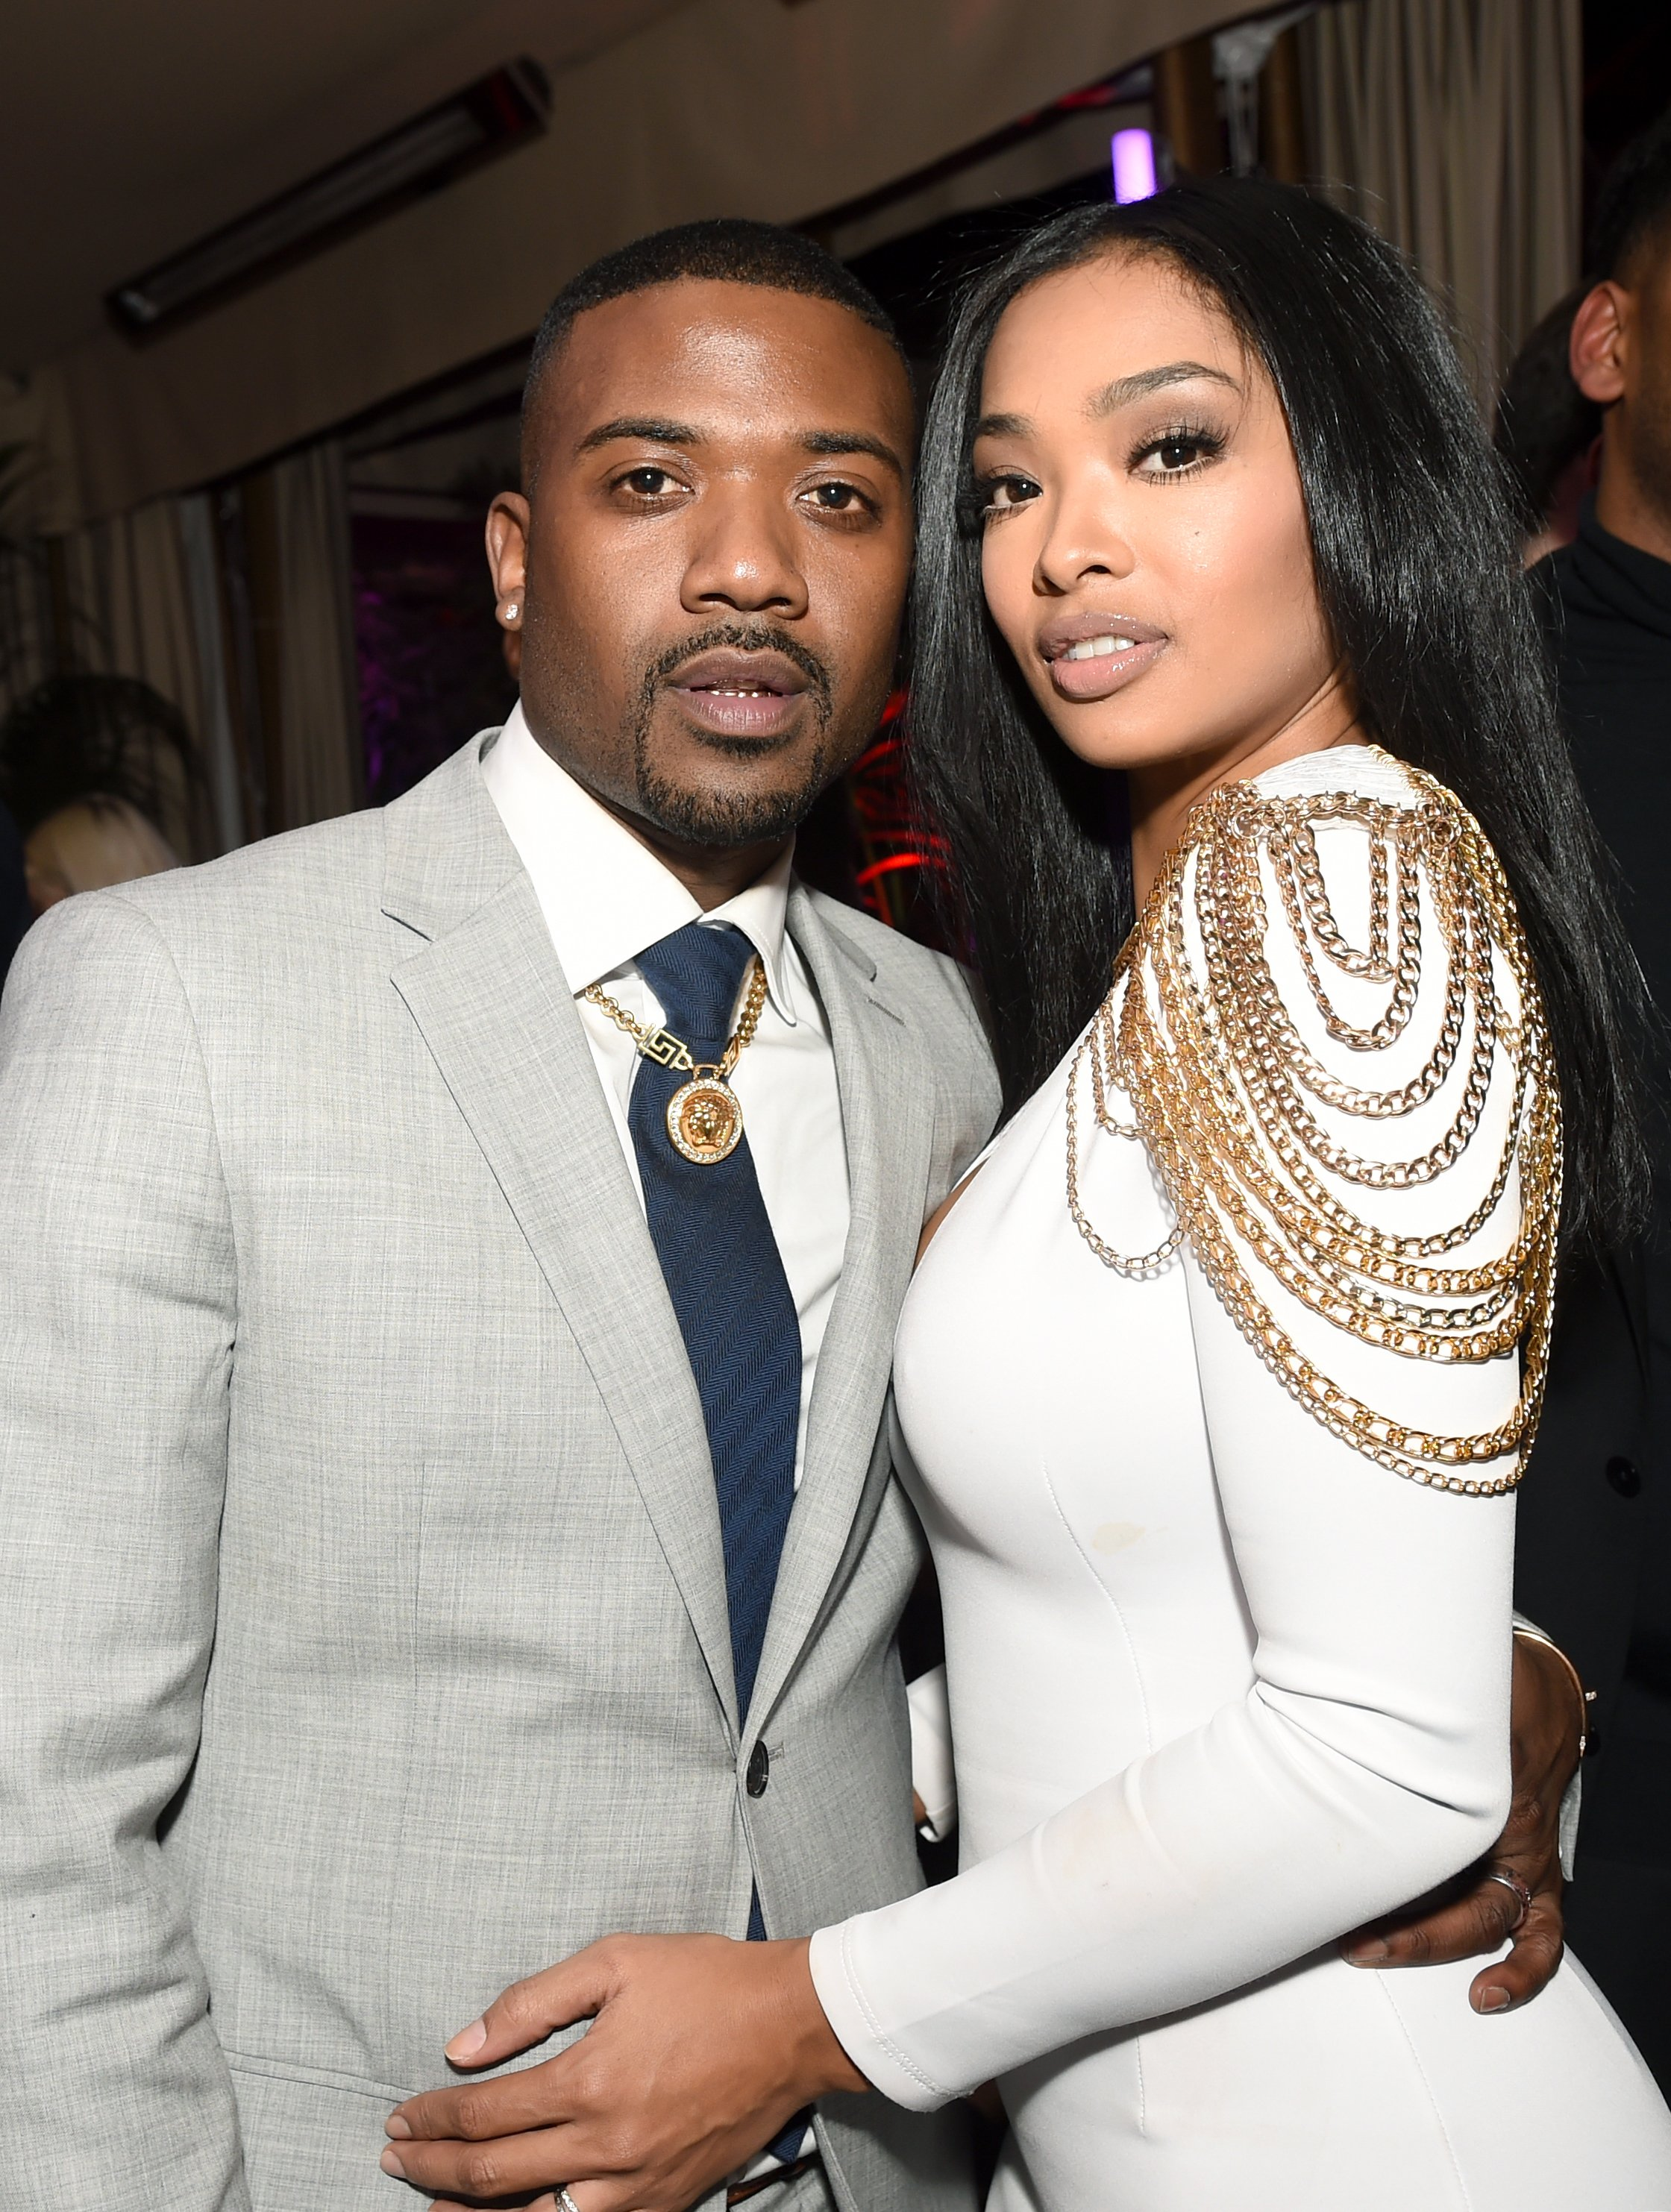 Singer Ray J and Princess Love attend GQ and Chance The Rapper Celebrate the Grammys in Partnership with YouTube at Chateau Marmont | Photo: Getty Images